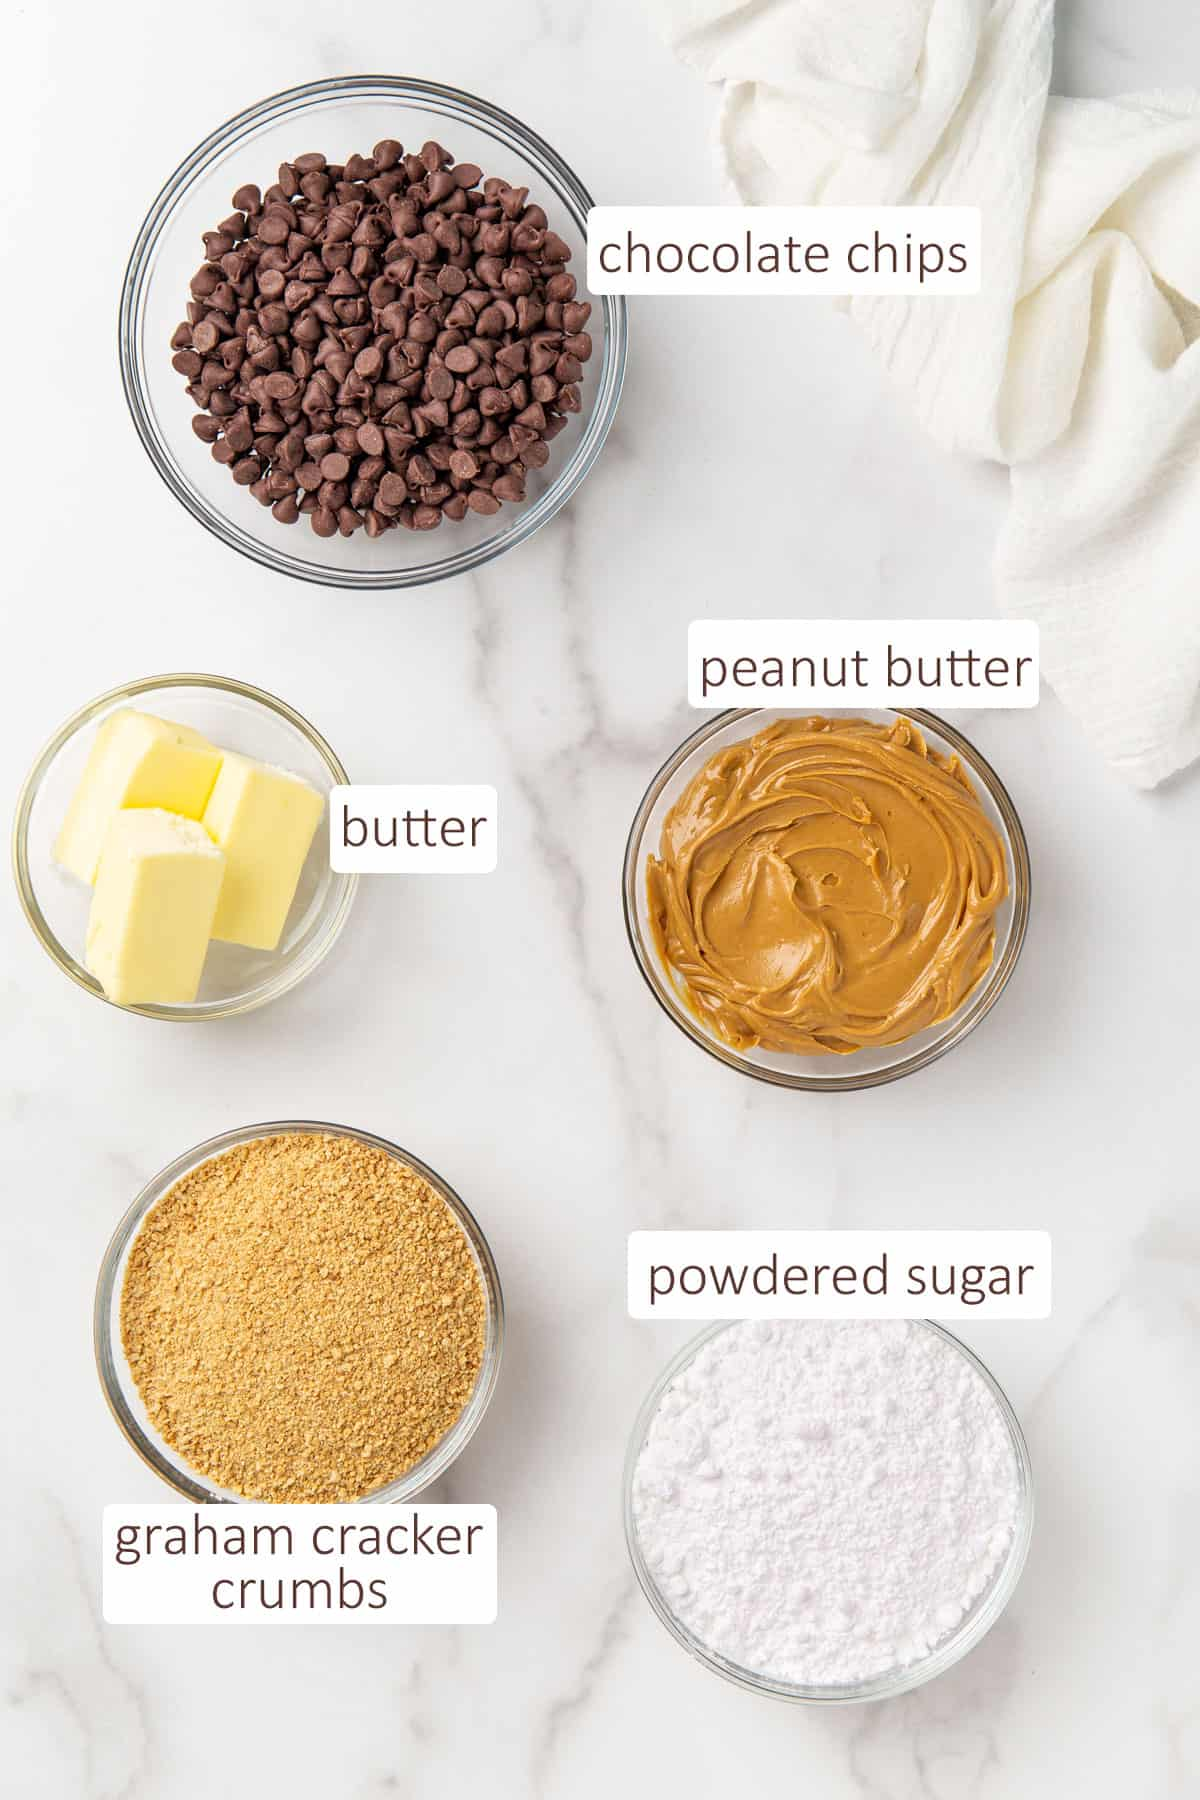 Overhead view of bowls of ingredients for chocolate peanut butter bars.